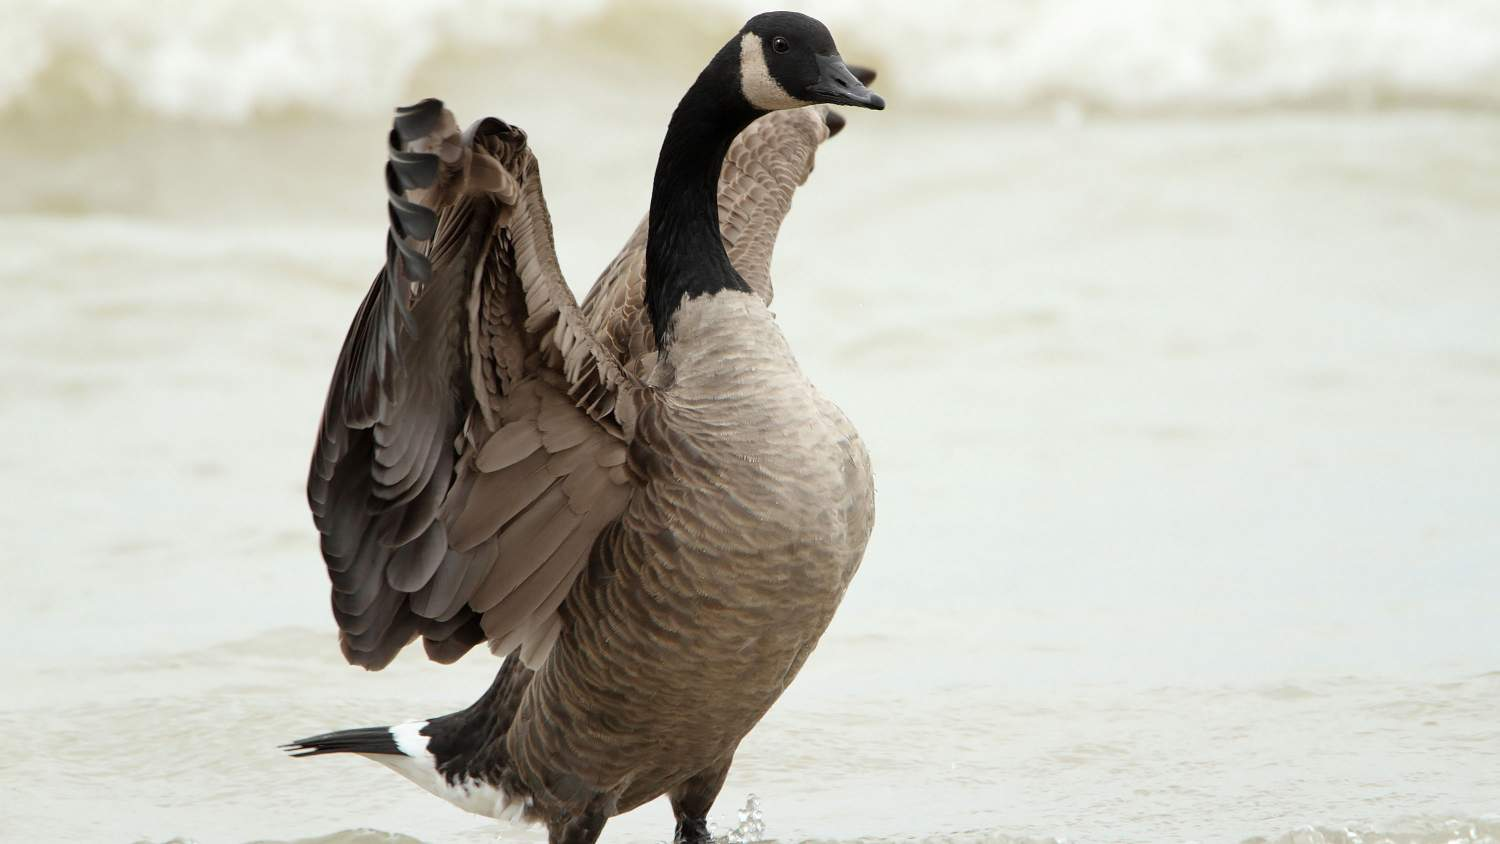 Canadian goose with outstretched wings